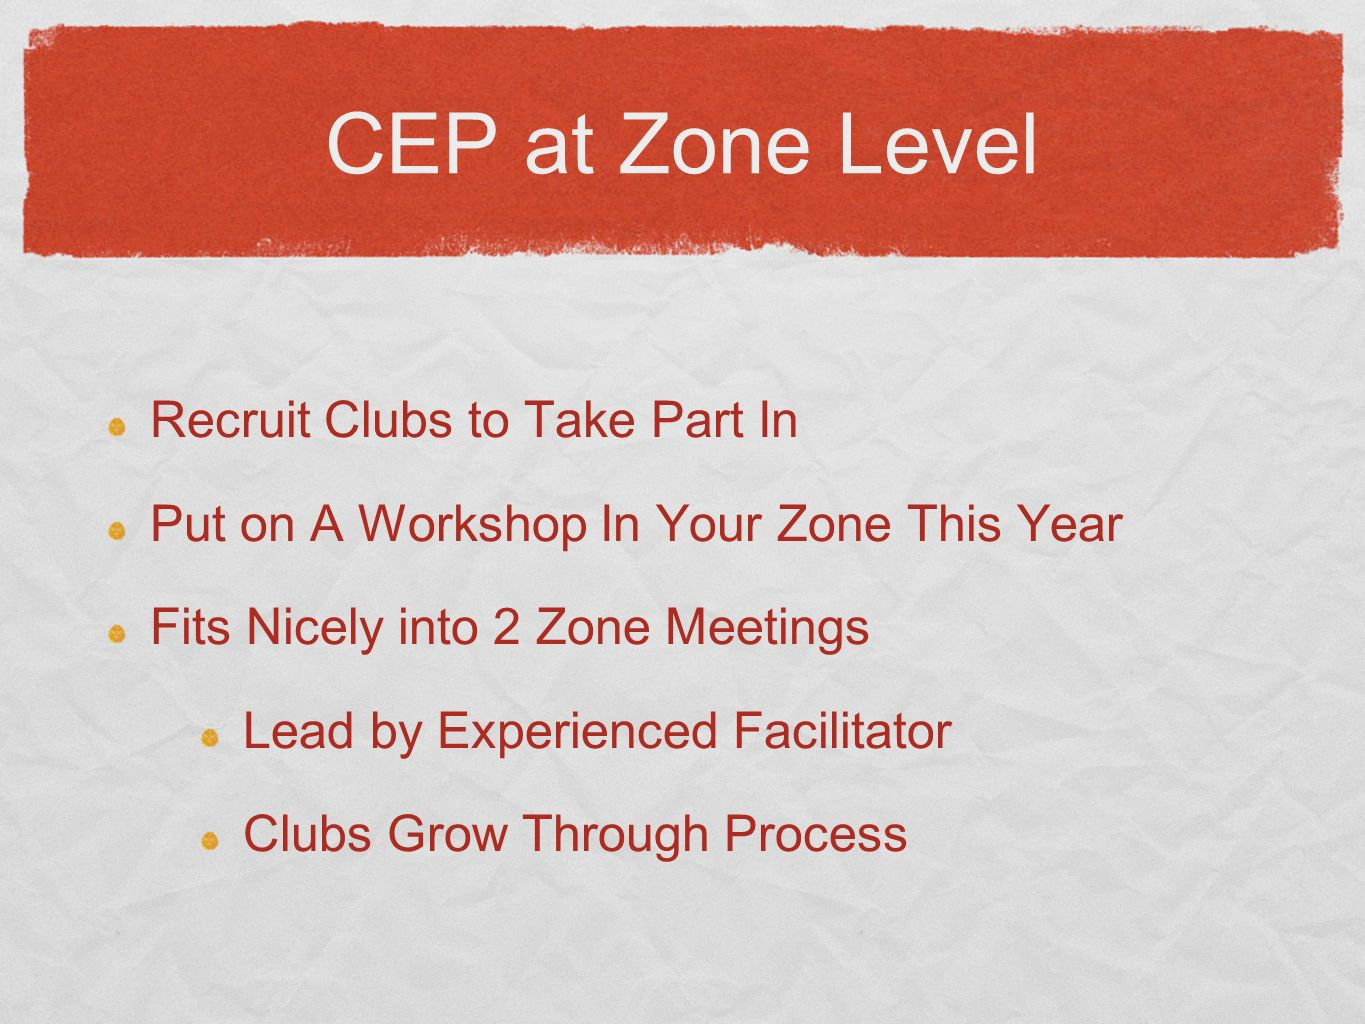 CEP at Zone Level Recruit Clubs to Take Part In Put on A Workshop In Your Zone This Year Fits Nicely into 2 Zone Meetings Lead by Experienced Facilitator Clubs Grow Through Process